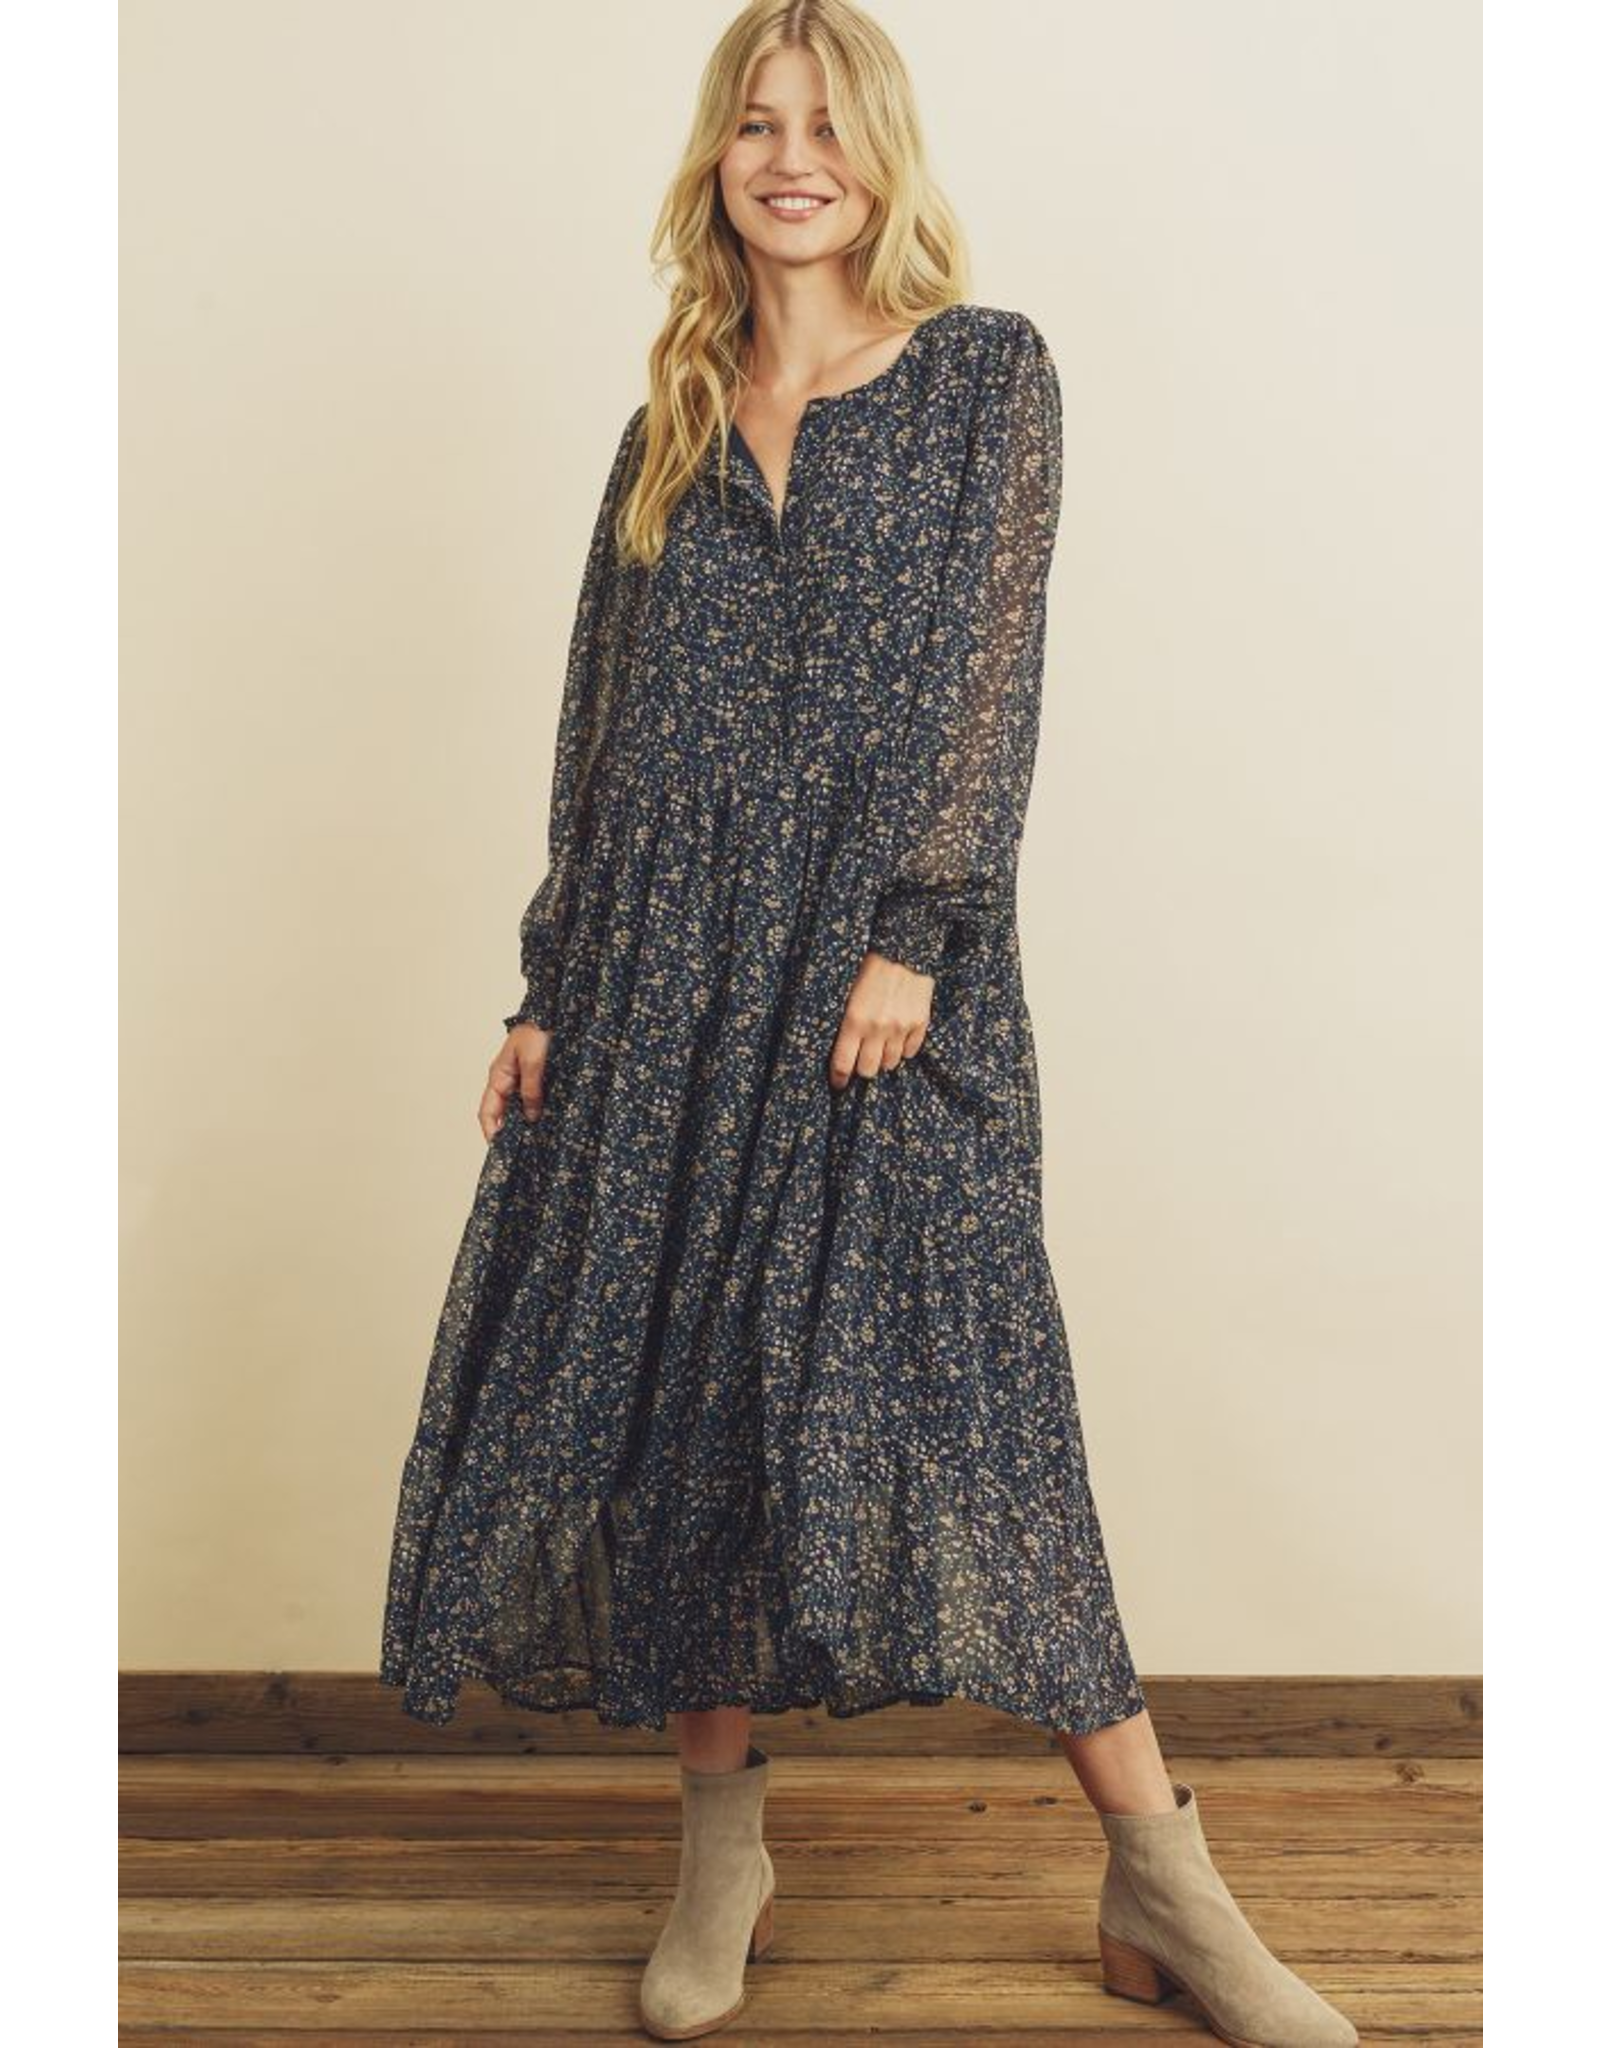 DITSY FLORAL TIERED MIDI DRESS